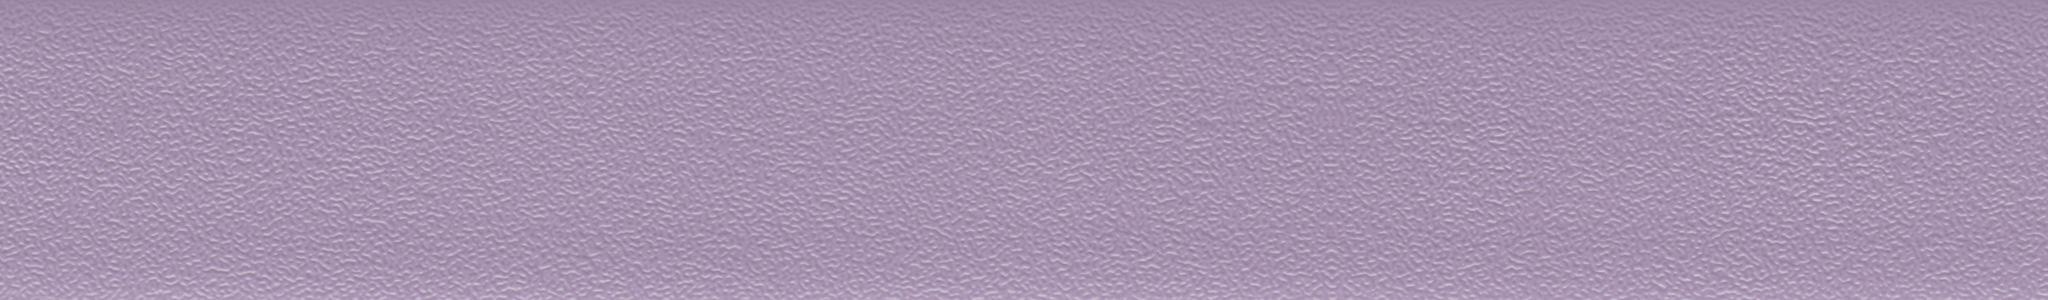 HU 15148 Chant ABS Violet Perle 101